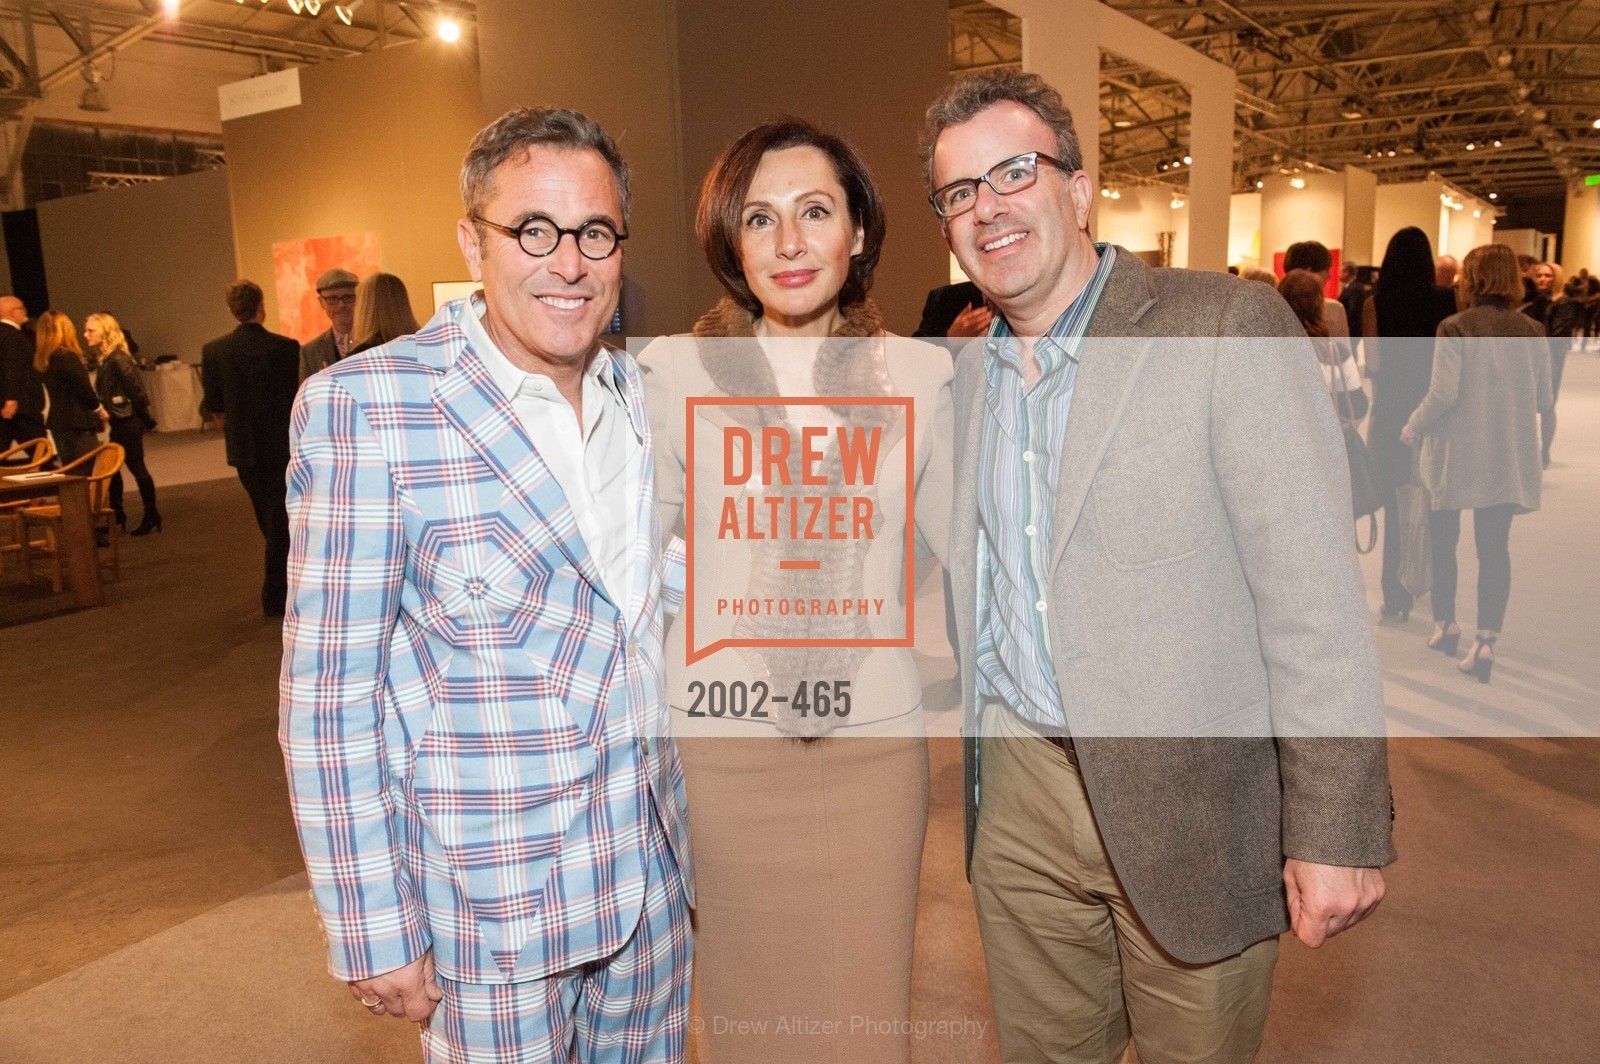 Ricky Serbin, Clara Shayevich, Mitchell Benjamin, FOG Design + Art Preview Gala, US. US, January 16th, 2014,Drew Altizer, Drew Altizer Photography, full-service agency, private events, San Francisco photographer, photographer california